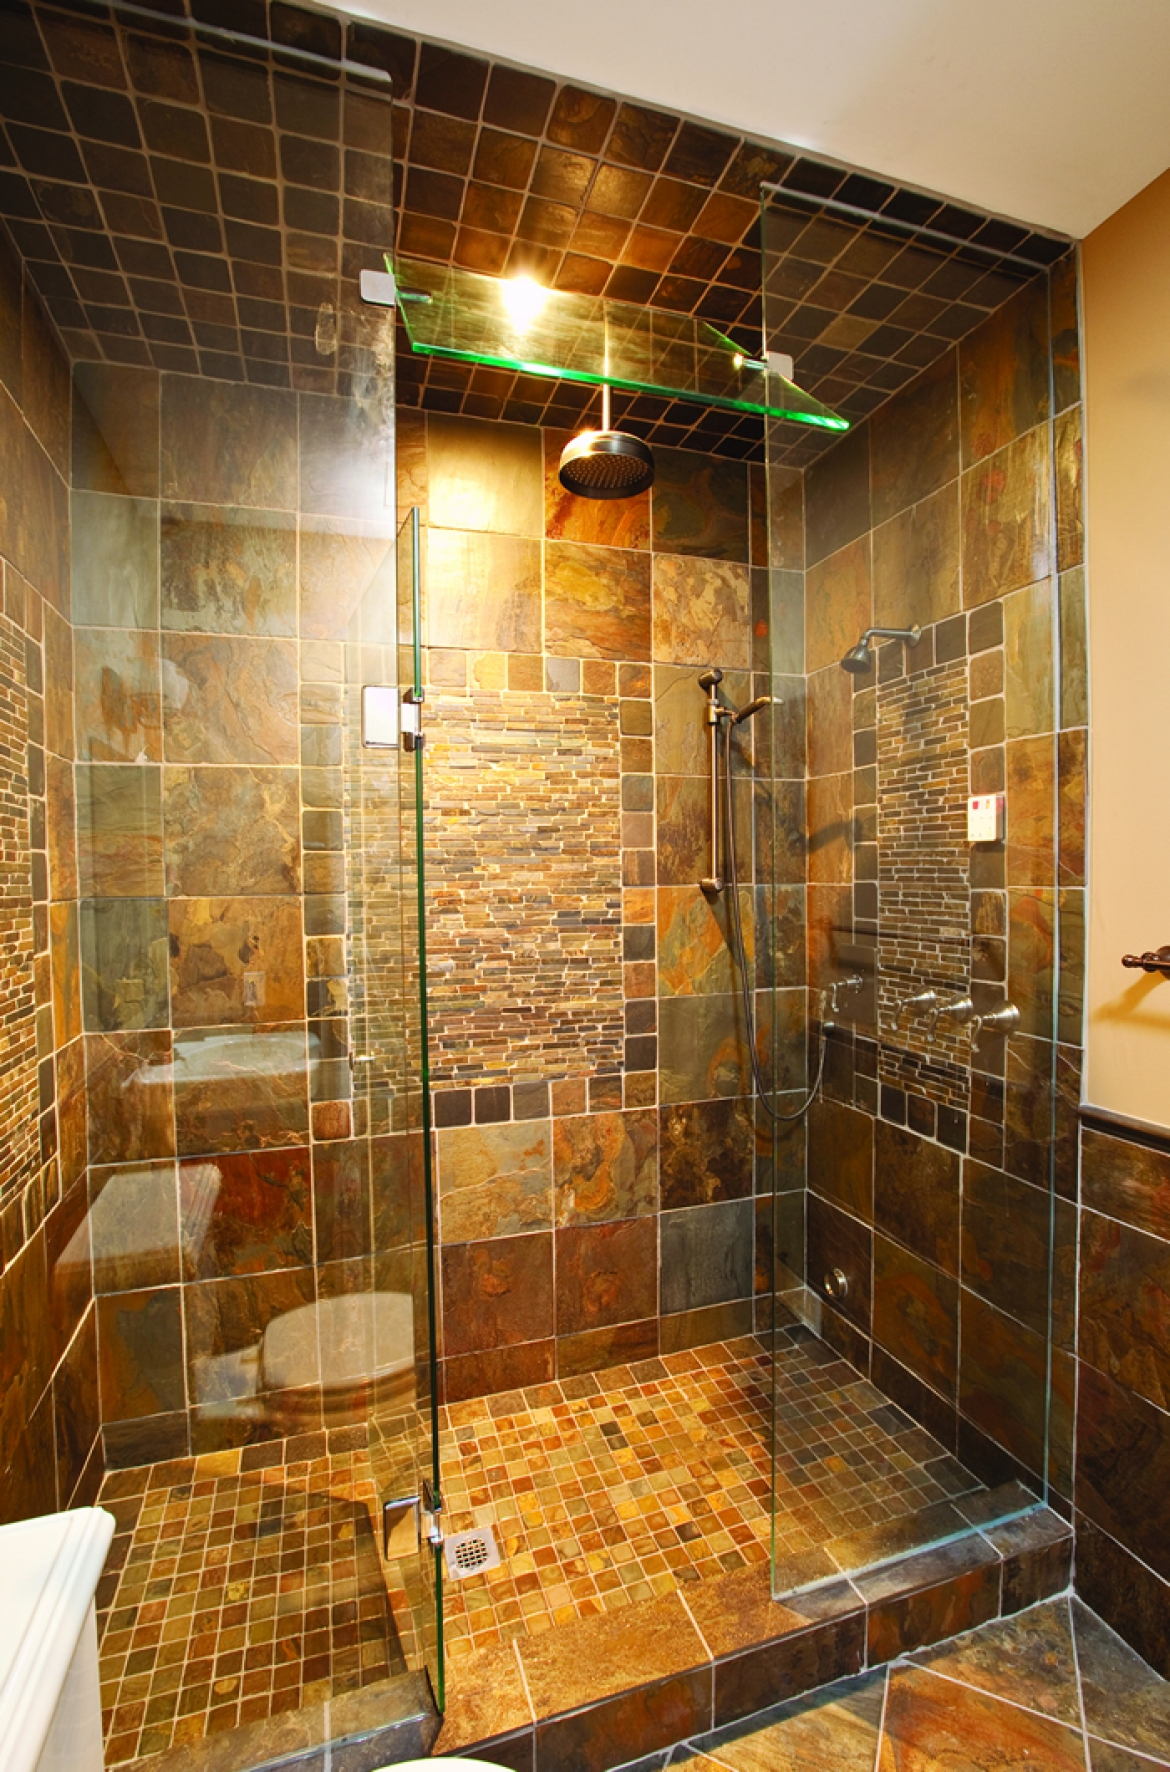 Make the Most of Small Bathrooms | Great American Floors